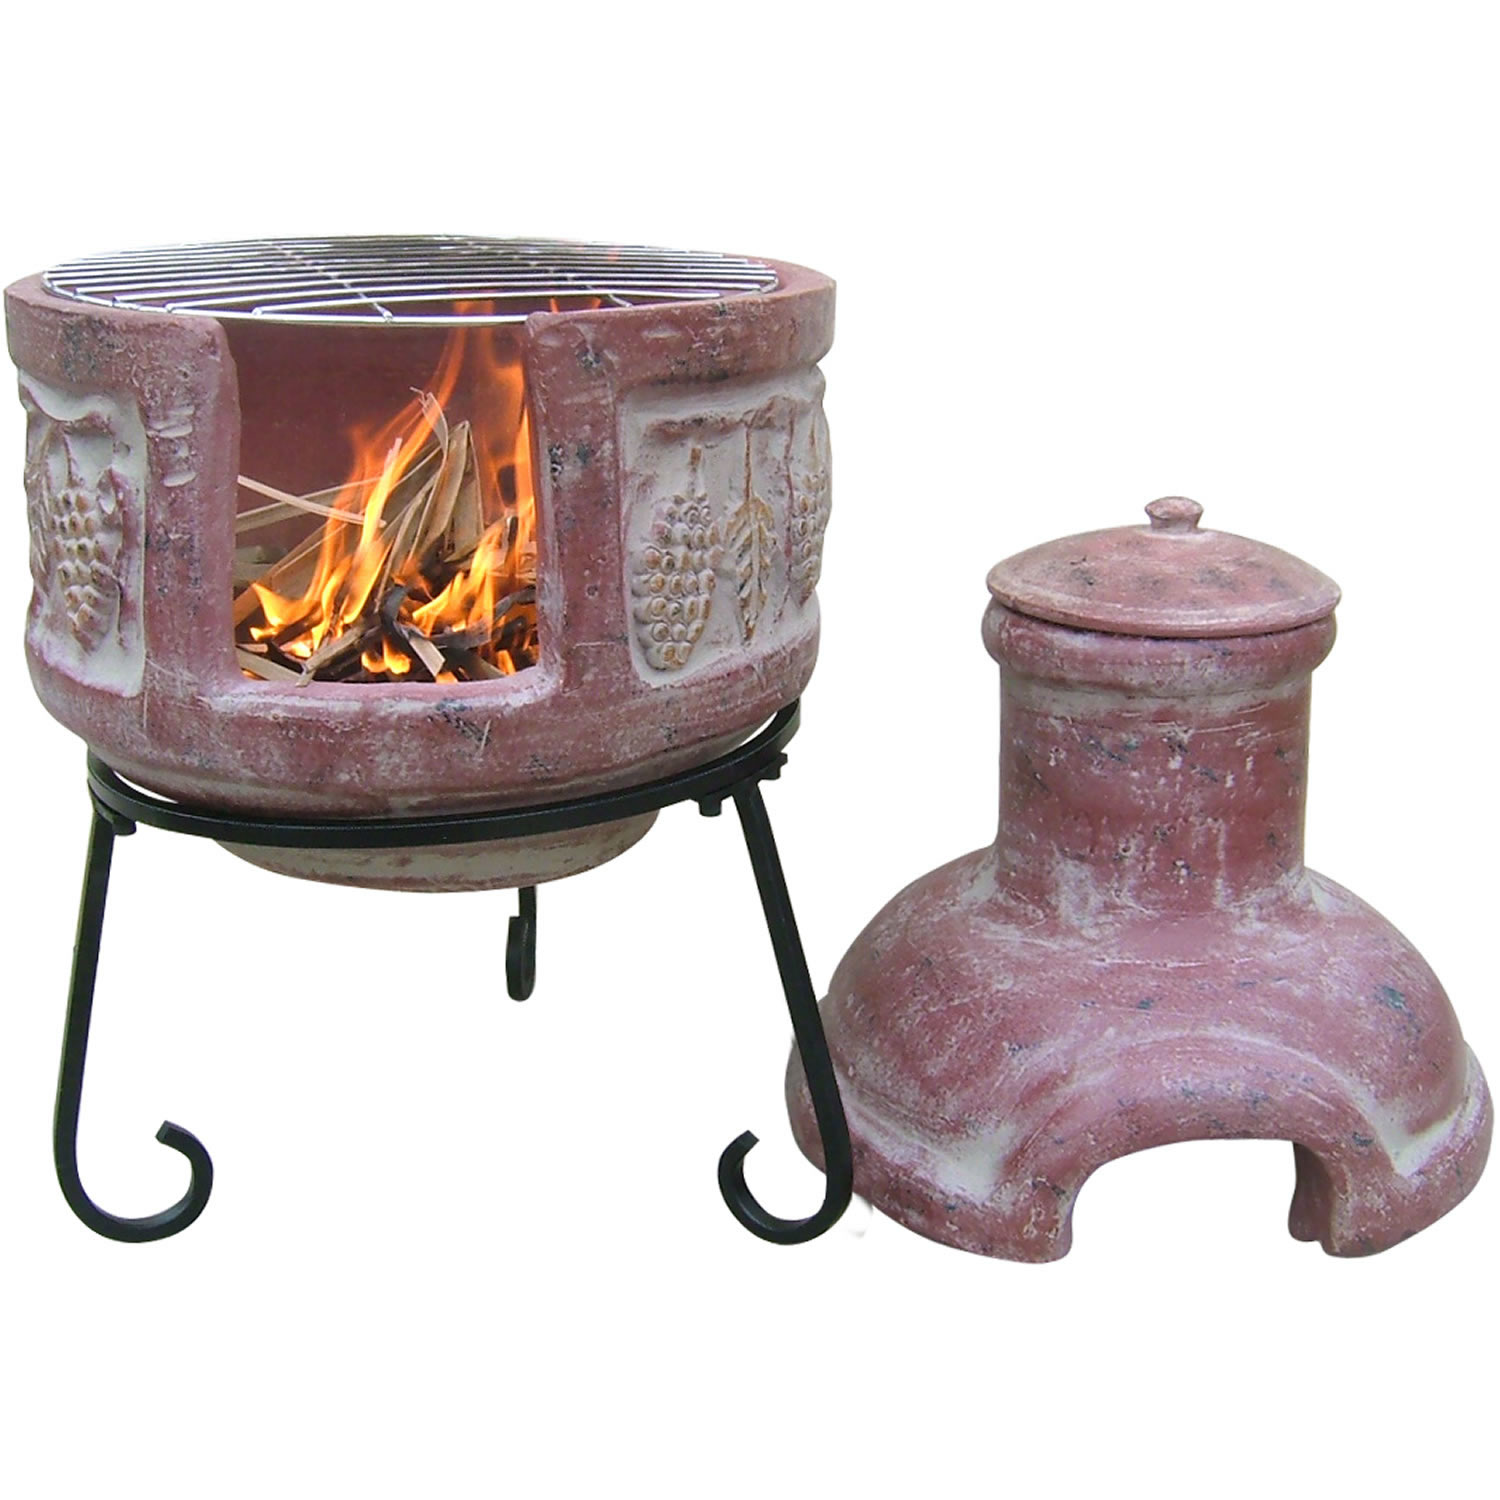 Cheap chiminea fire pit clay garden landscape for Terracotta chiminea